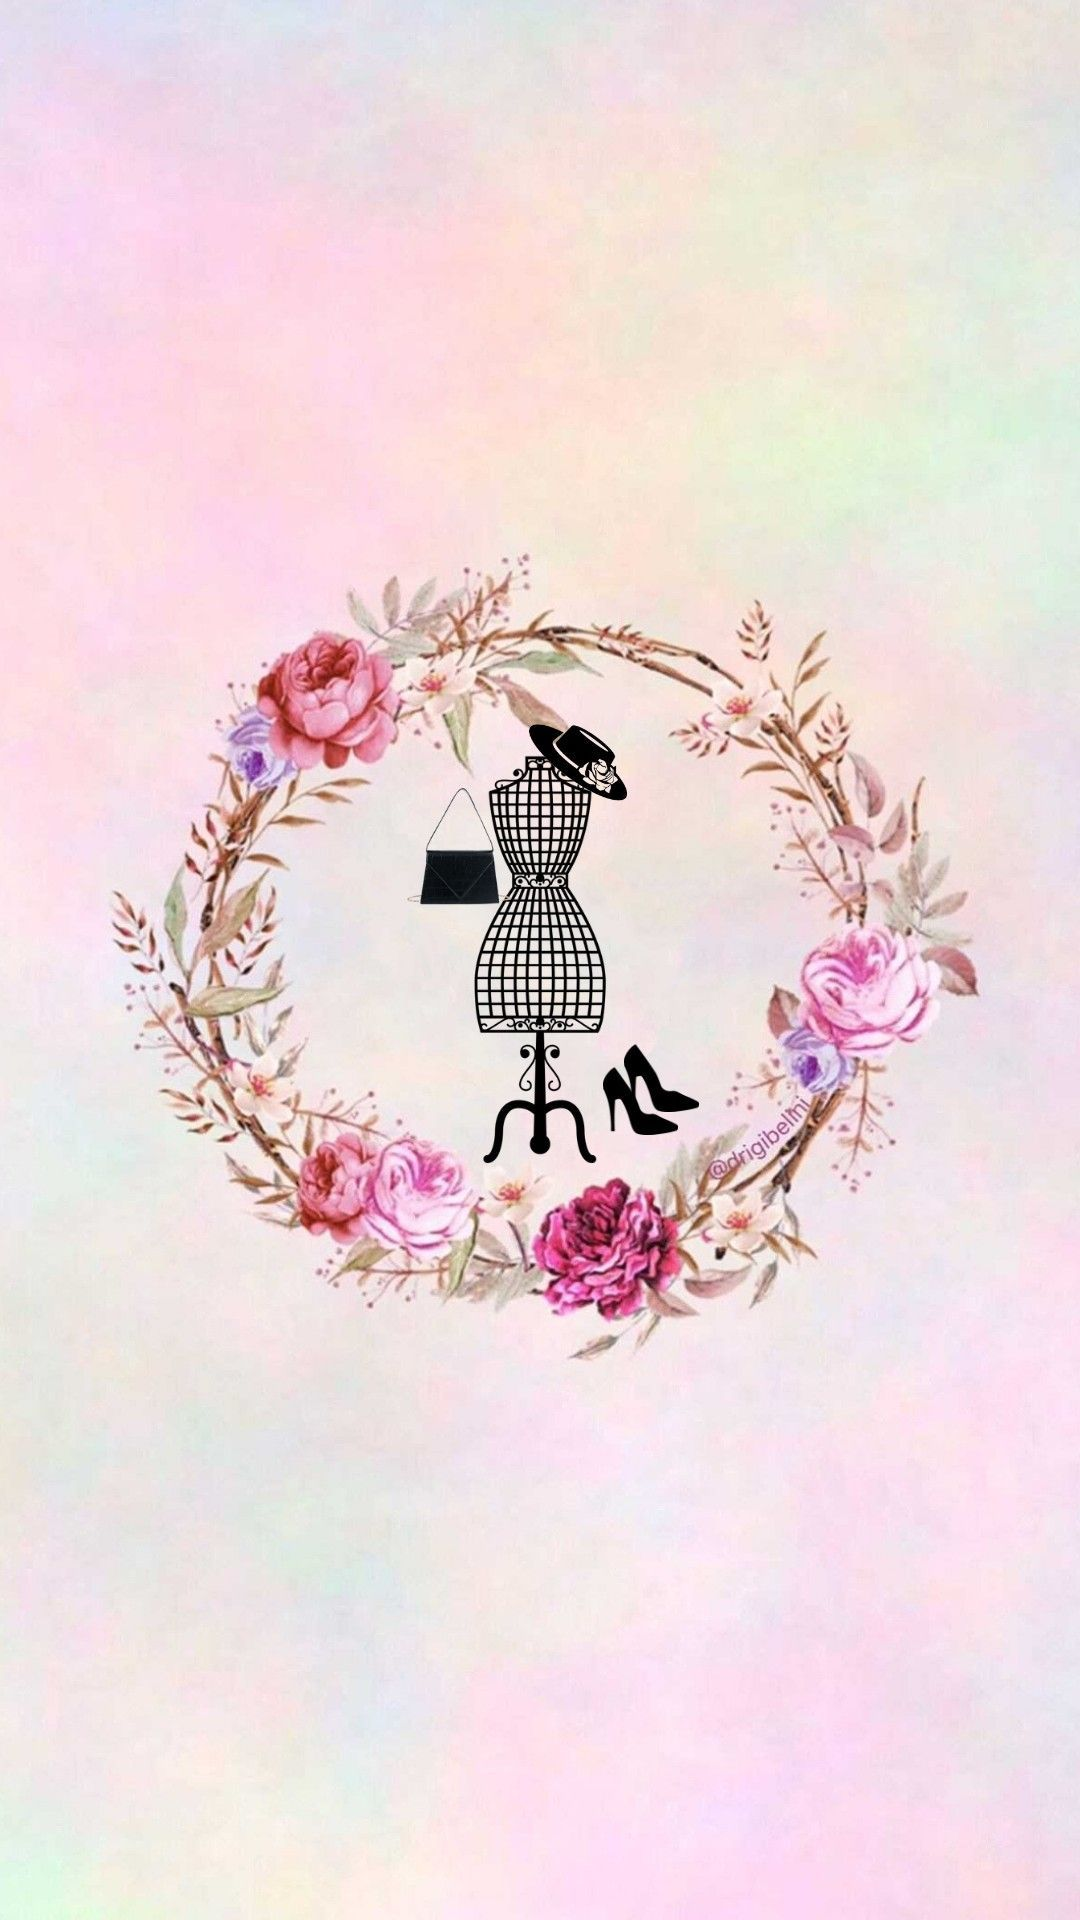 Pin by Skytp Nack on อินสตราแกรม Clothing logo, Boutique